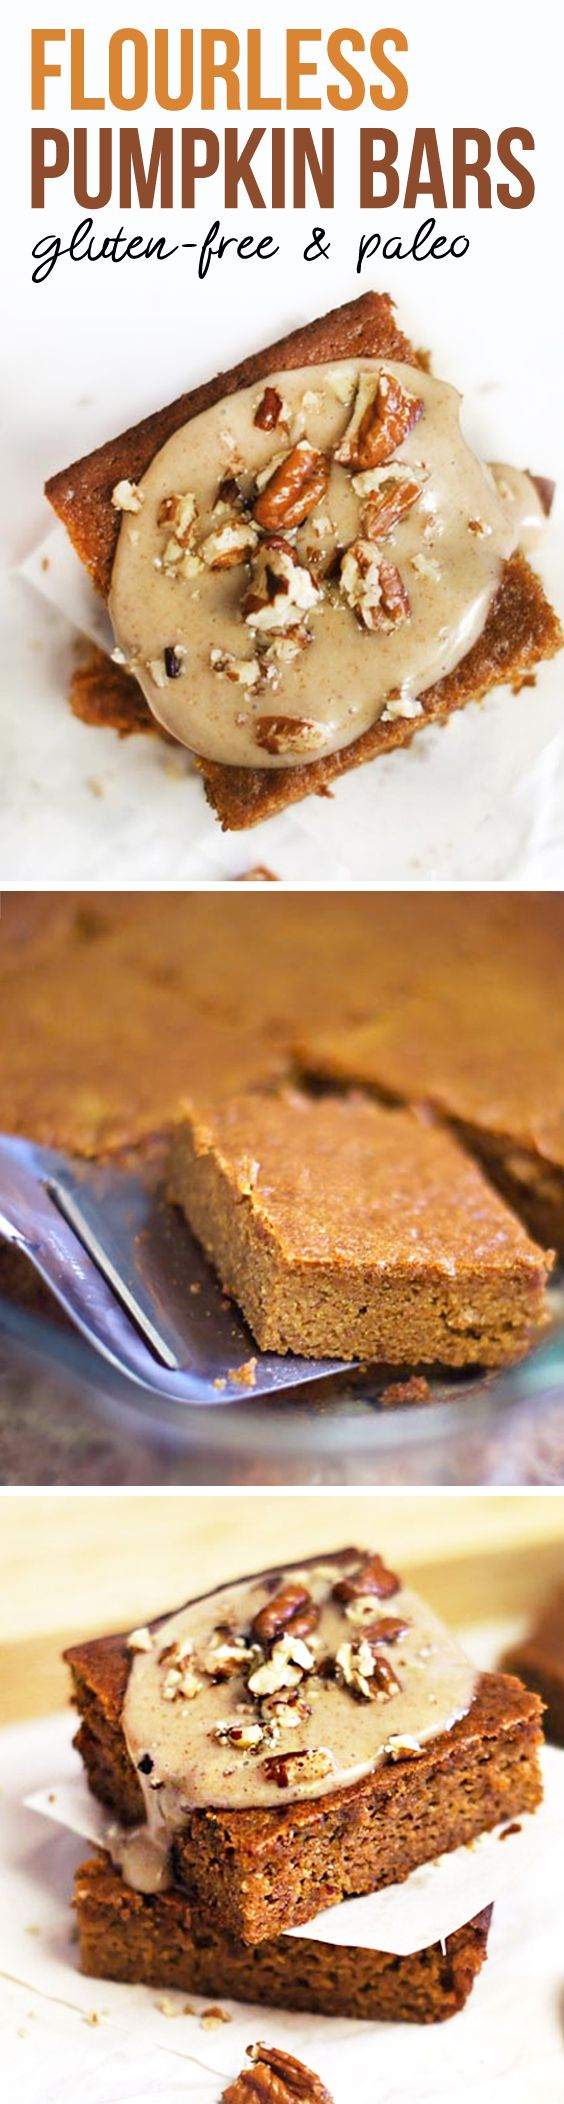 These FLOURLESS pumpkin bars are so moist and fluffy! They're naturally gluten-free, made with almond butter and honey, for a healthier baked treat.